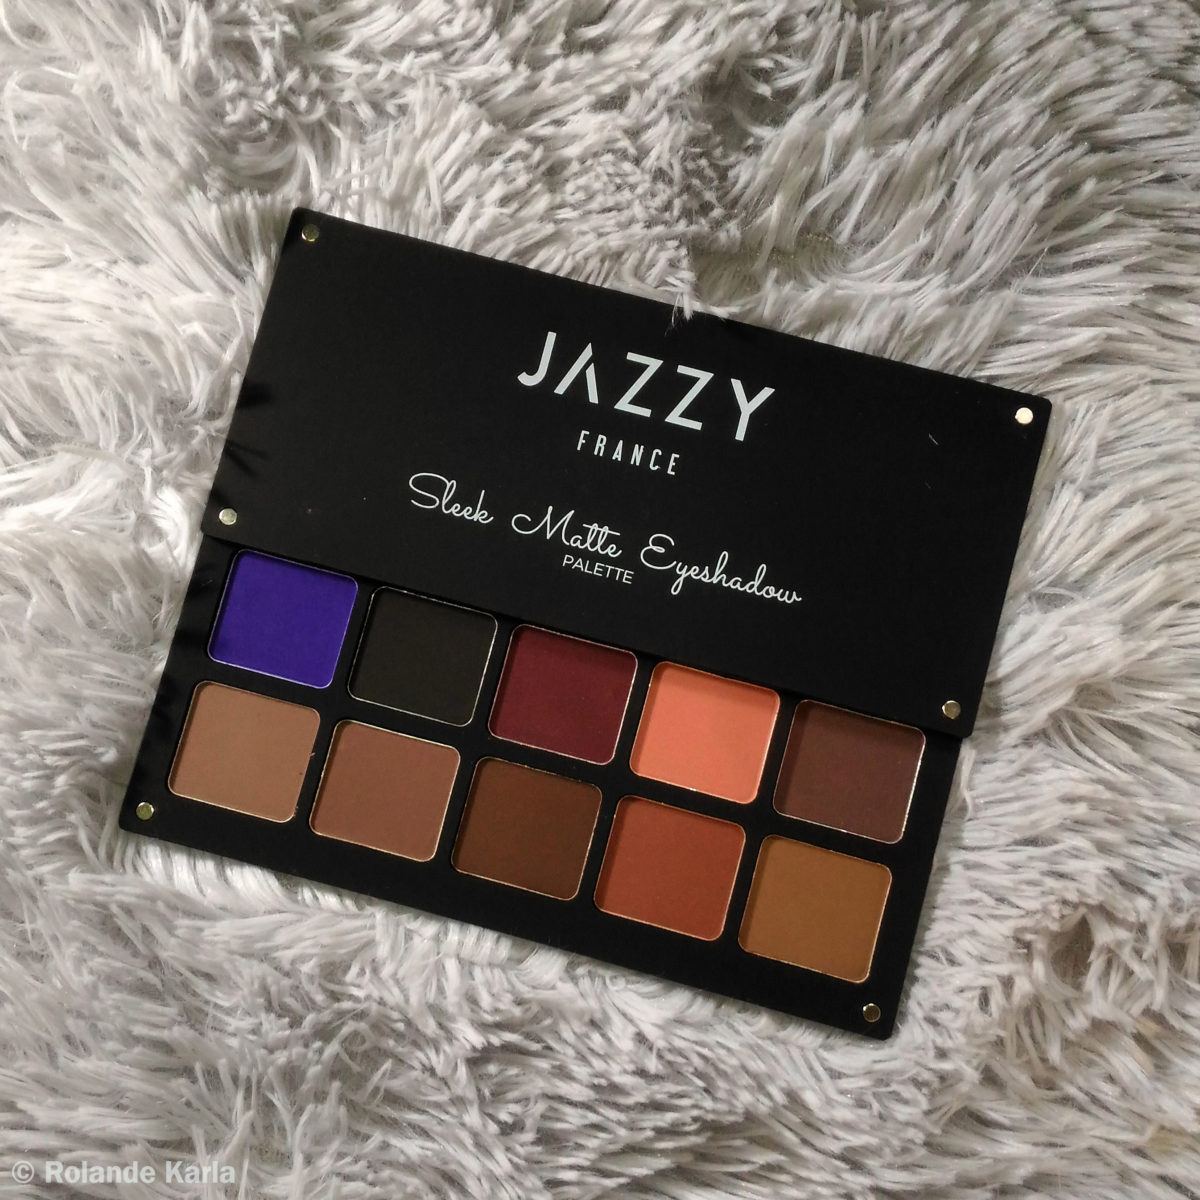 Jazzy France Sleek Matte Eyeshadow Palette – Night Out || Product Review